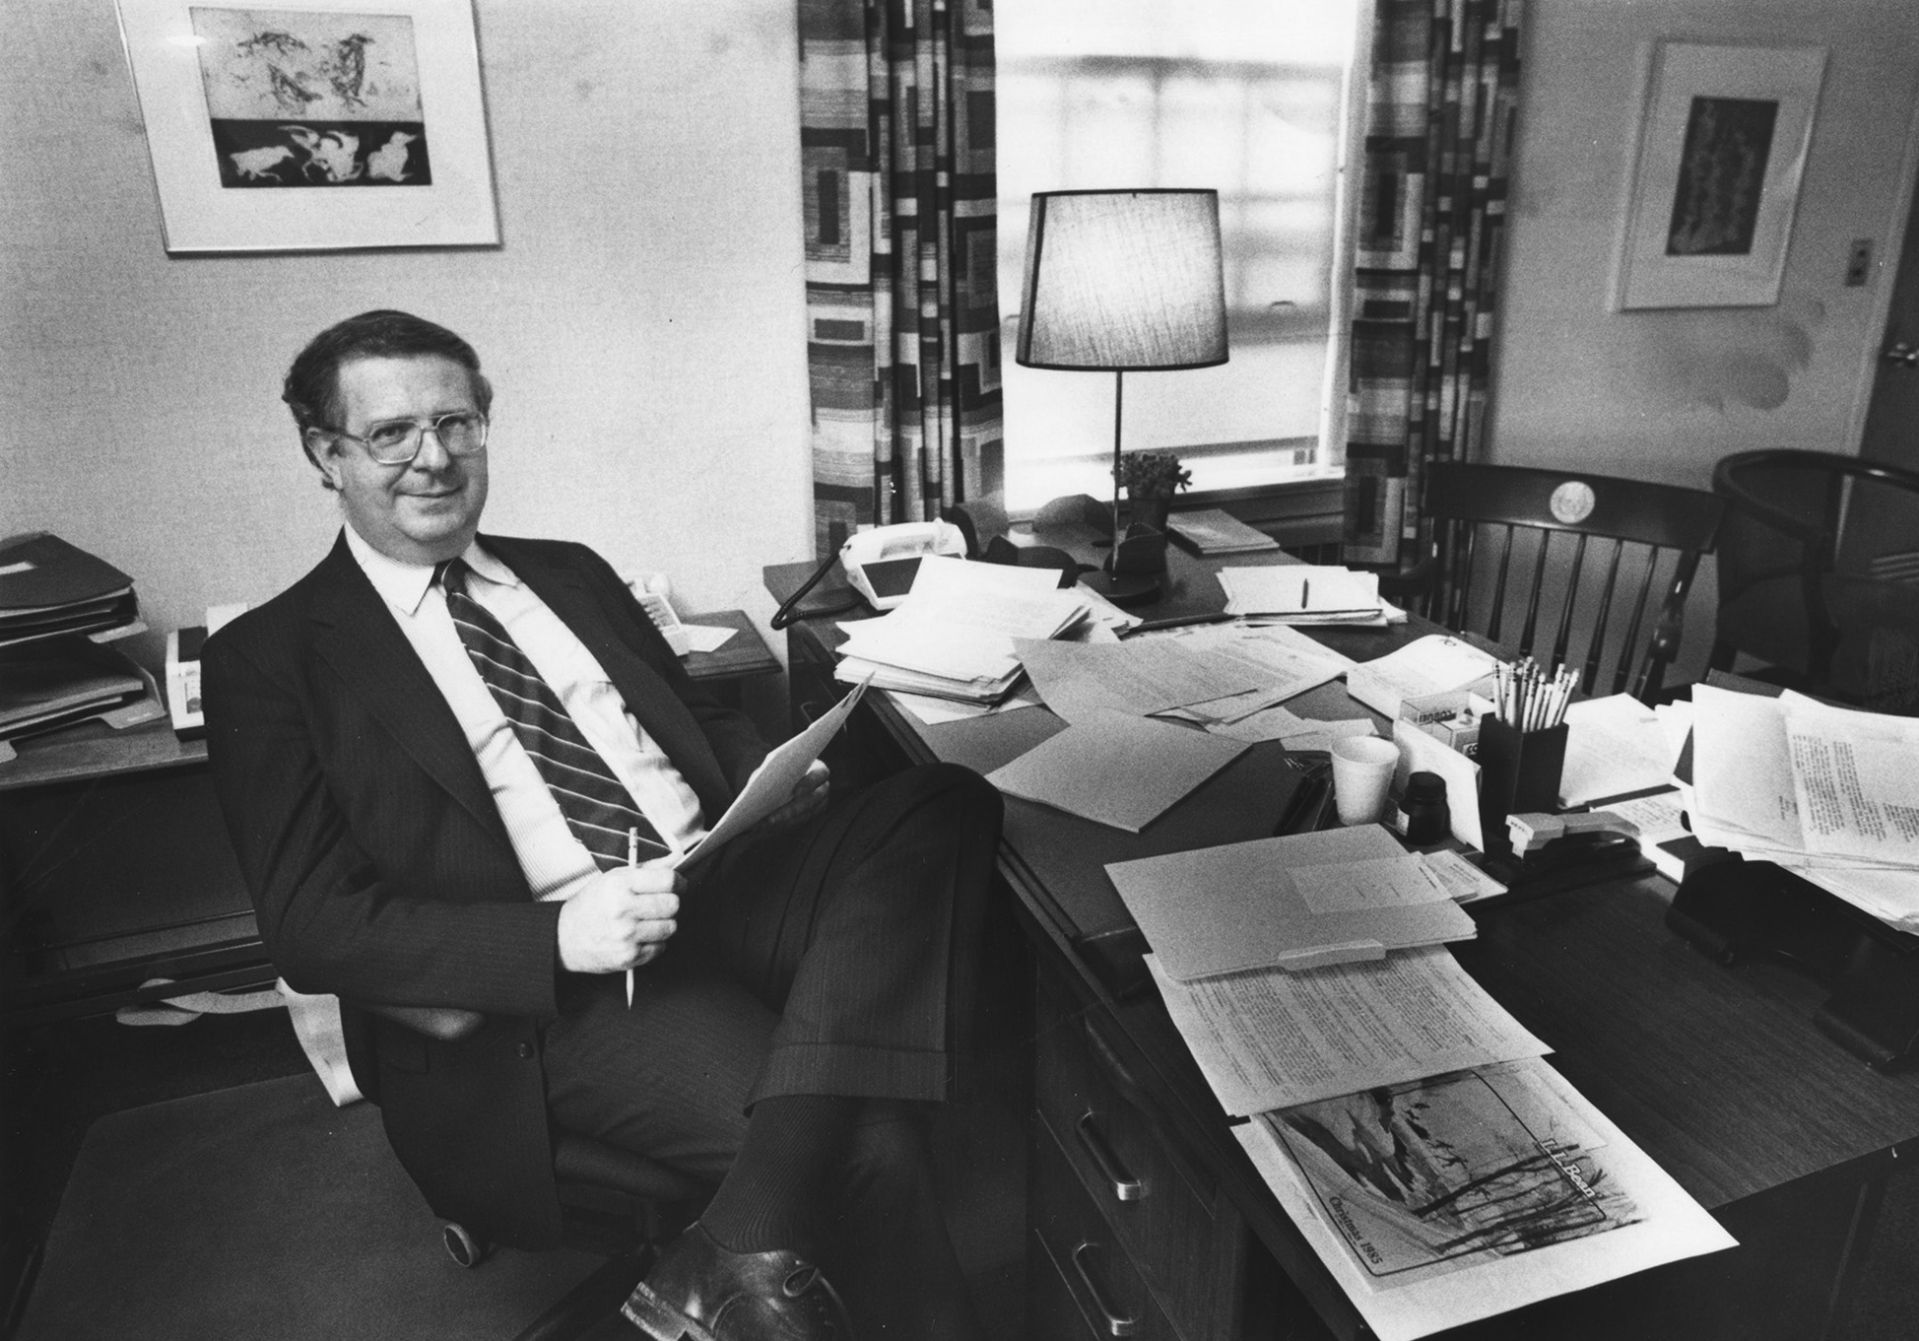 Carl Straub, seen in his office in 1985 during his time as dean of the faculty. (Muskie Archives and Special Collections Library)